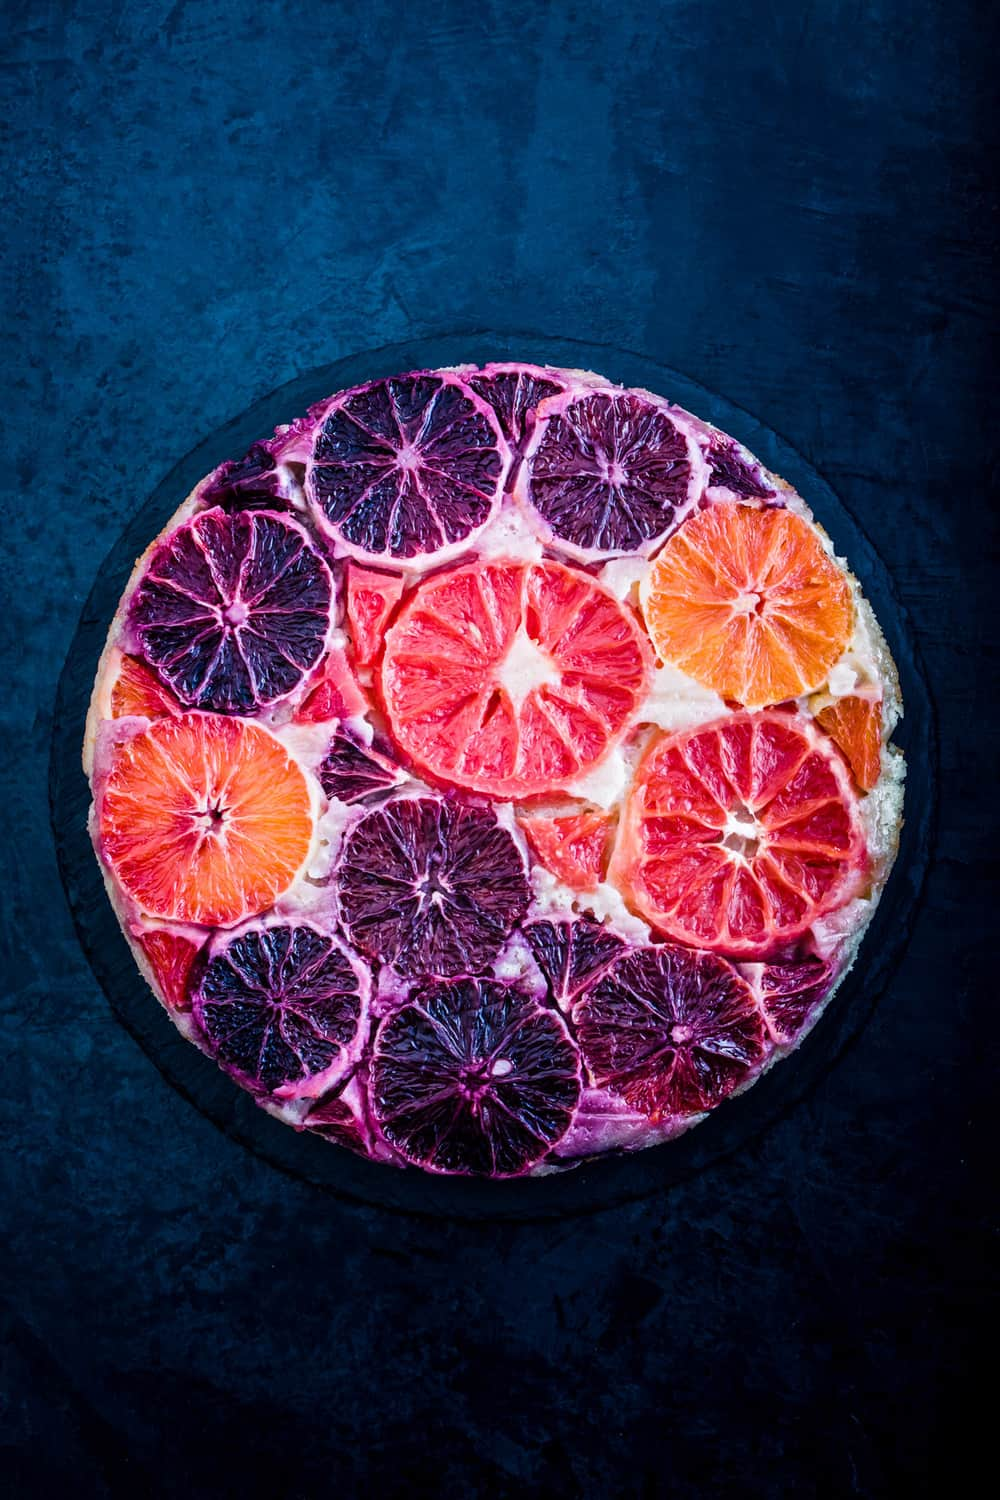 Winter Citrus Upside Down Cake all done, on a black background.